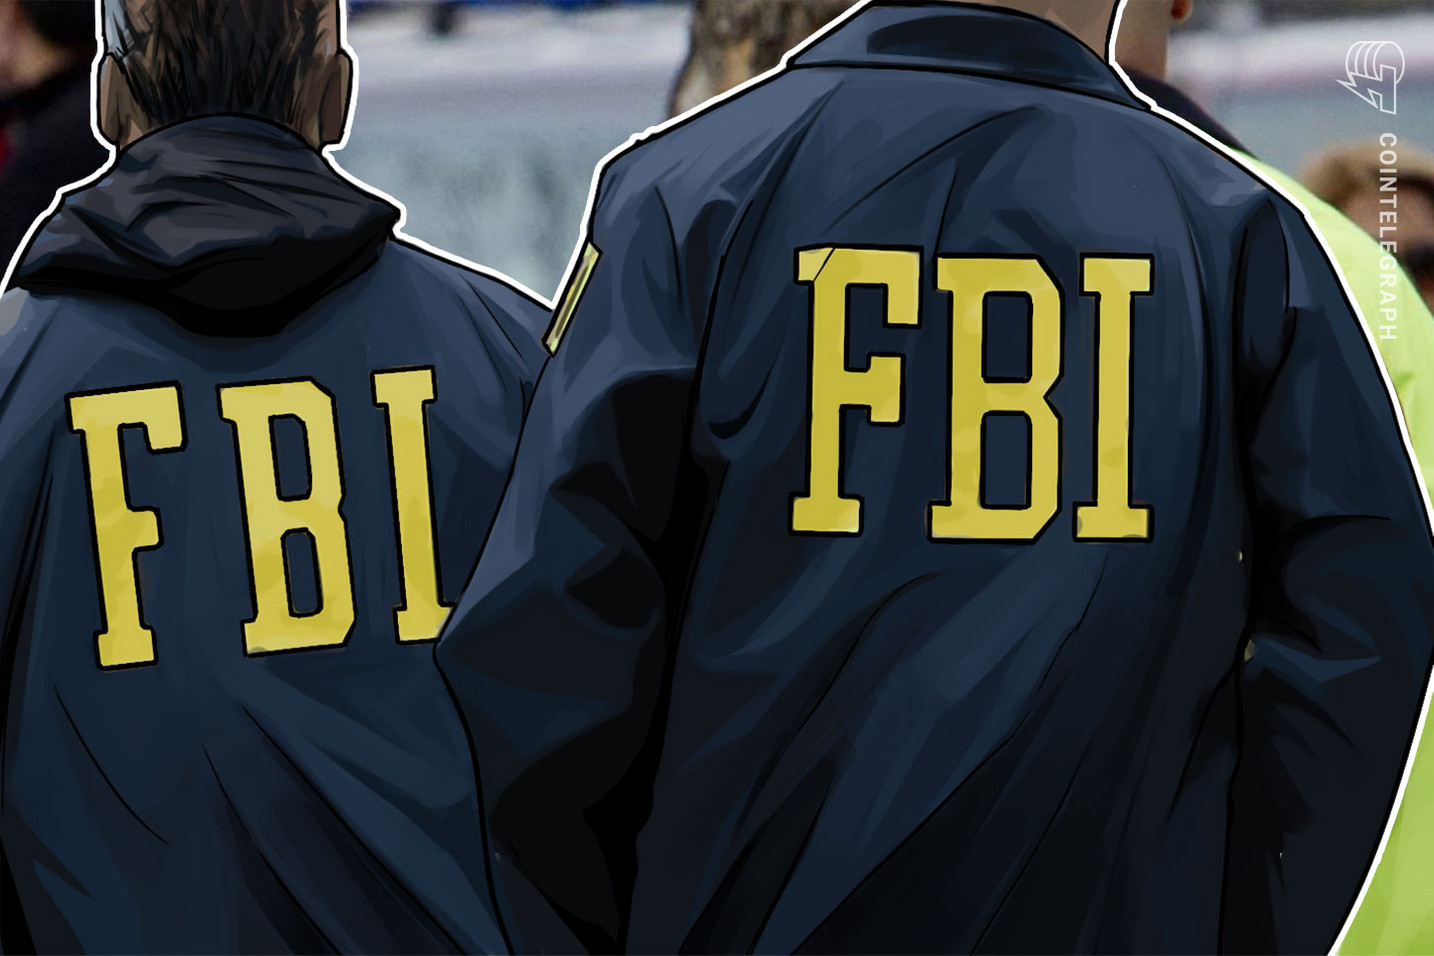 FBI and Tesla thwart $4 million Bitcoin ransomware plot